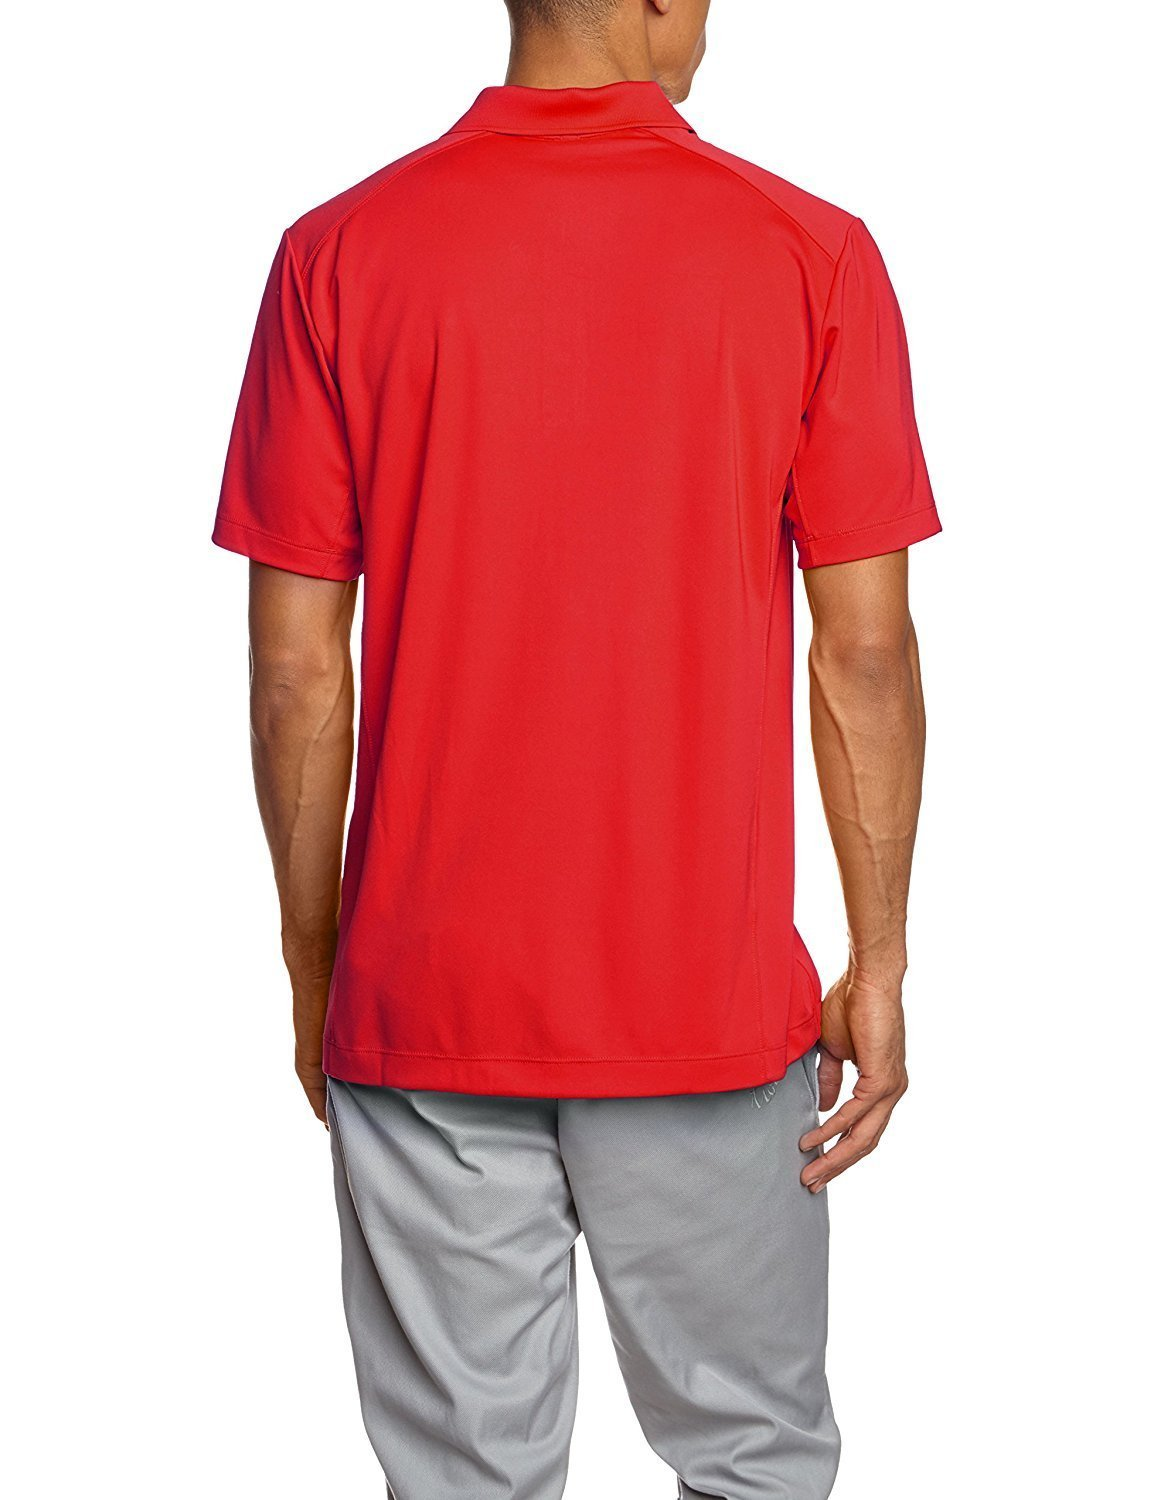 Nike Men's Golf Dri-fit Victory Polo Red 818050 657 (XL) by Nike (Image #2)